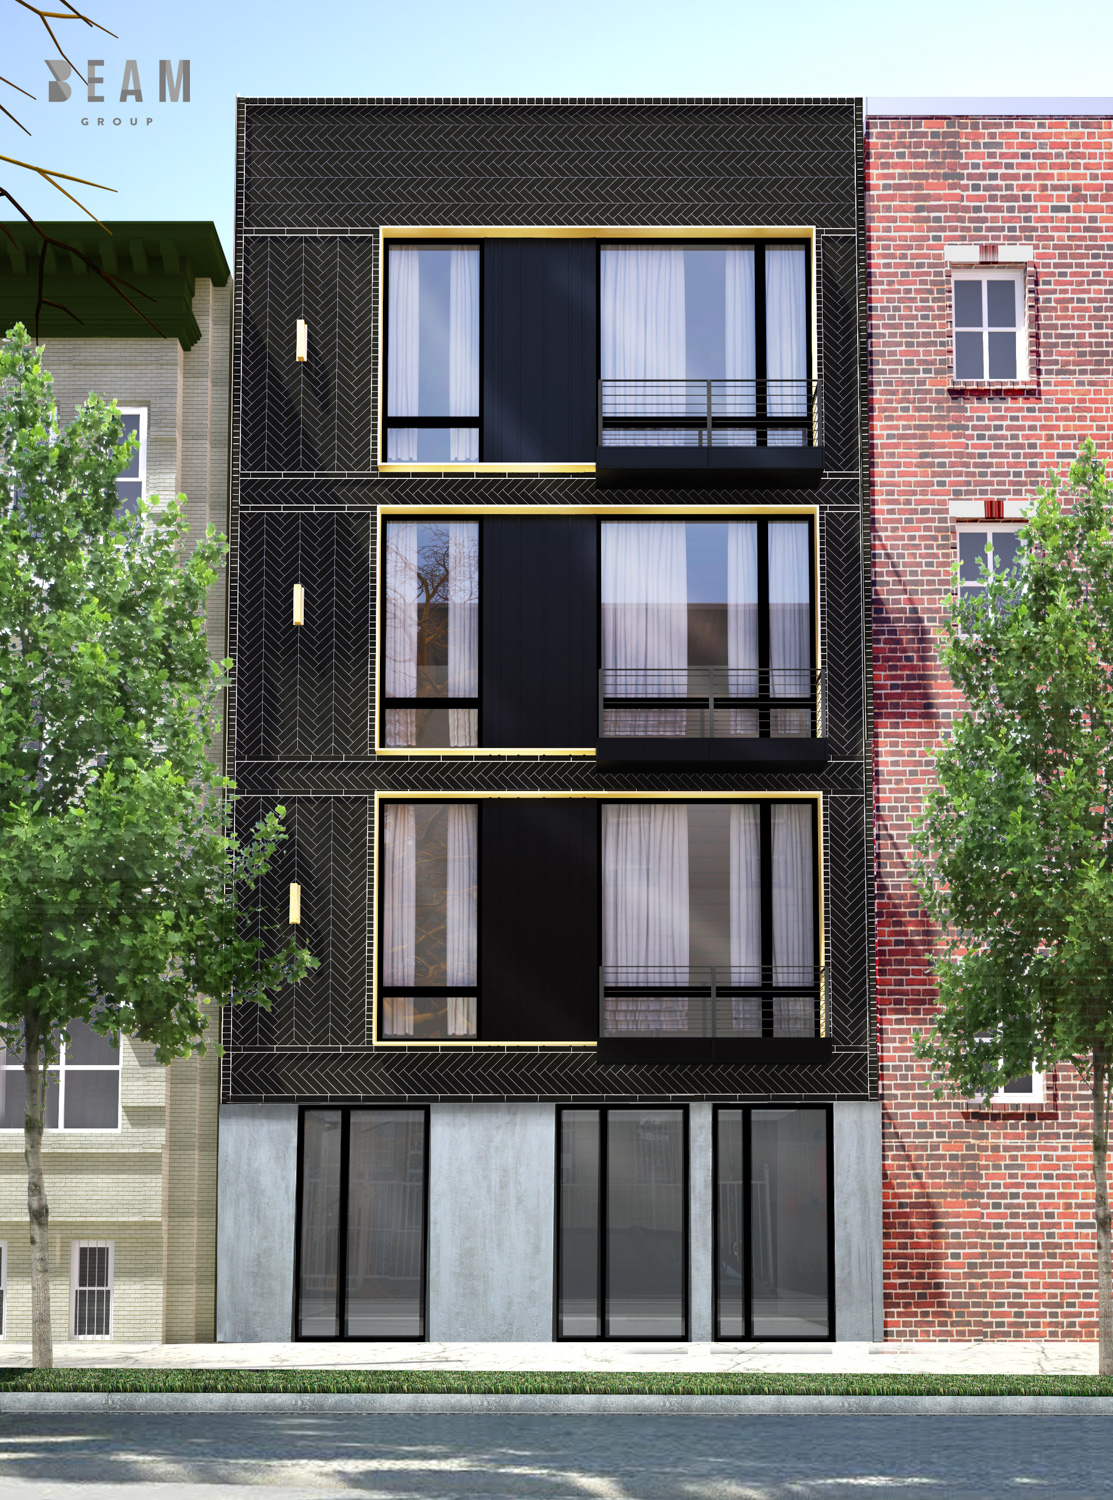 61 Troutman Street, rendering courtesy Beam Group